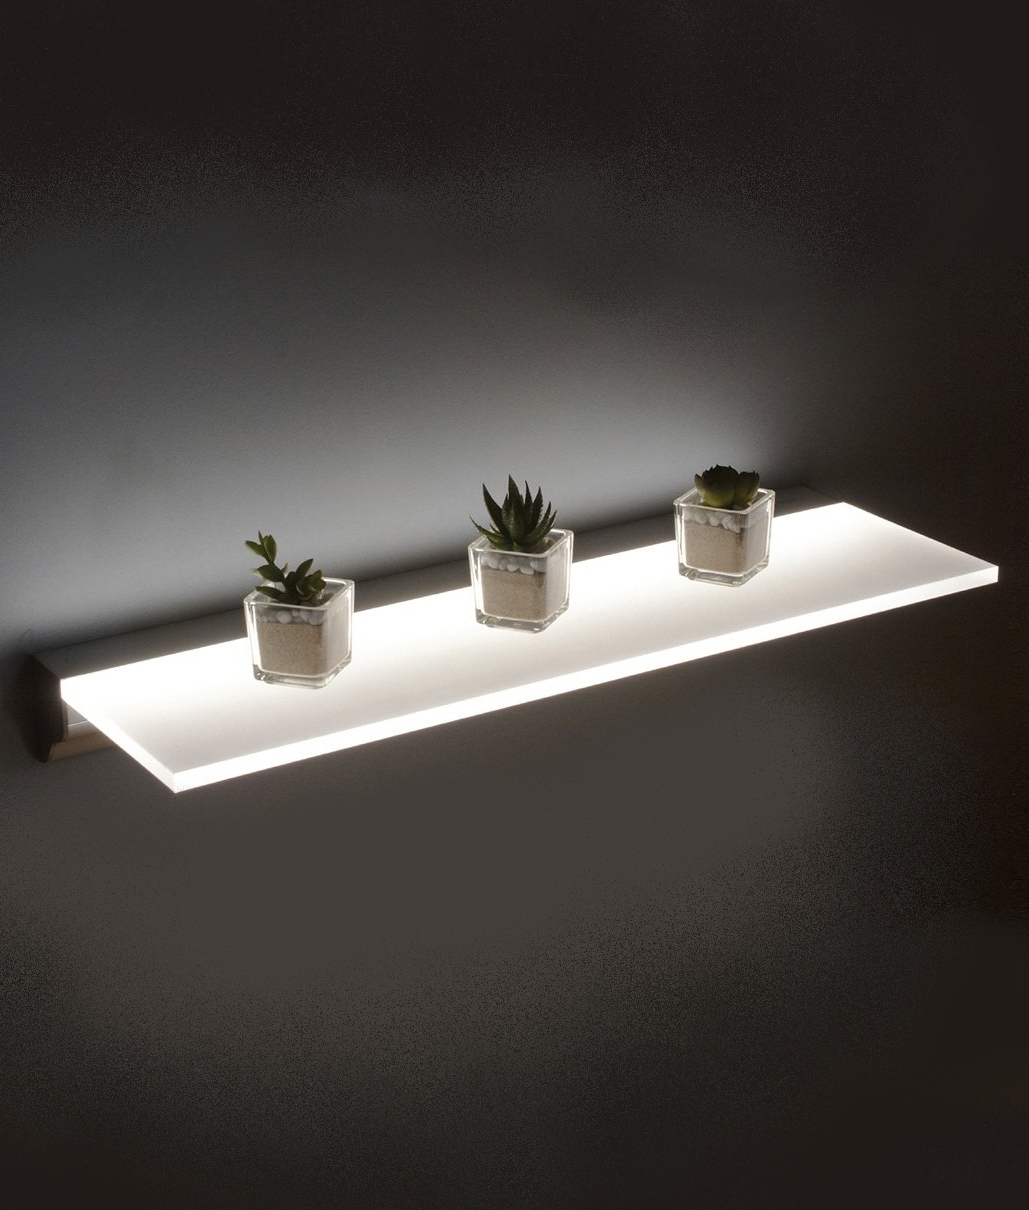 Surprising Led Opal Illuminated Shelf In Two Sizes Download Free Architecture Designs Embacsunscenecom